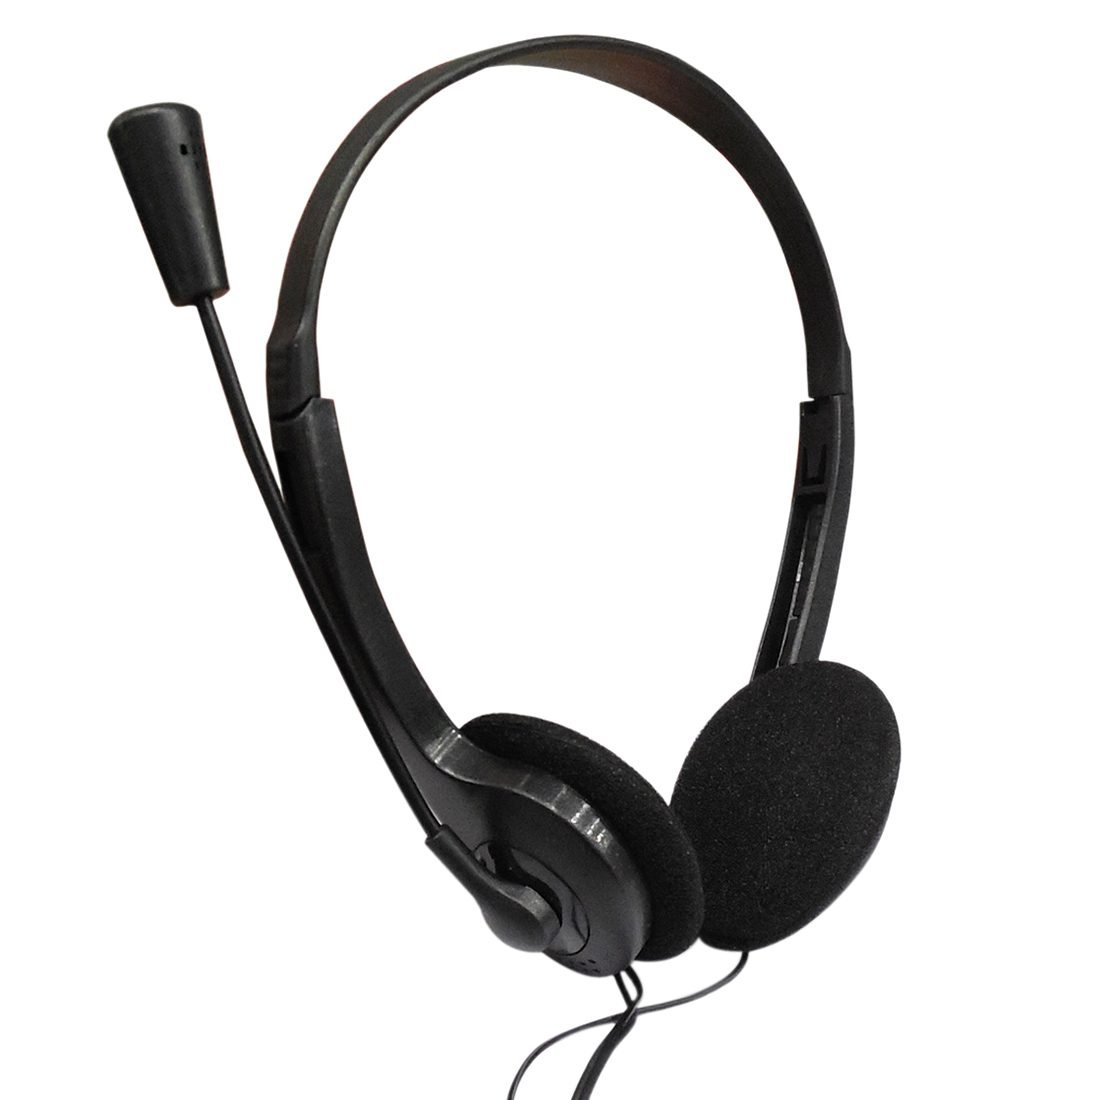 SODIAL 3.5mm Stereo Headset Earphone Headphone with Microphone for Laptop by SODIAL (Image #2)